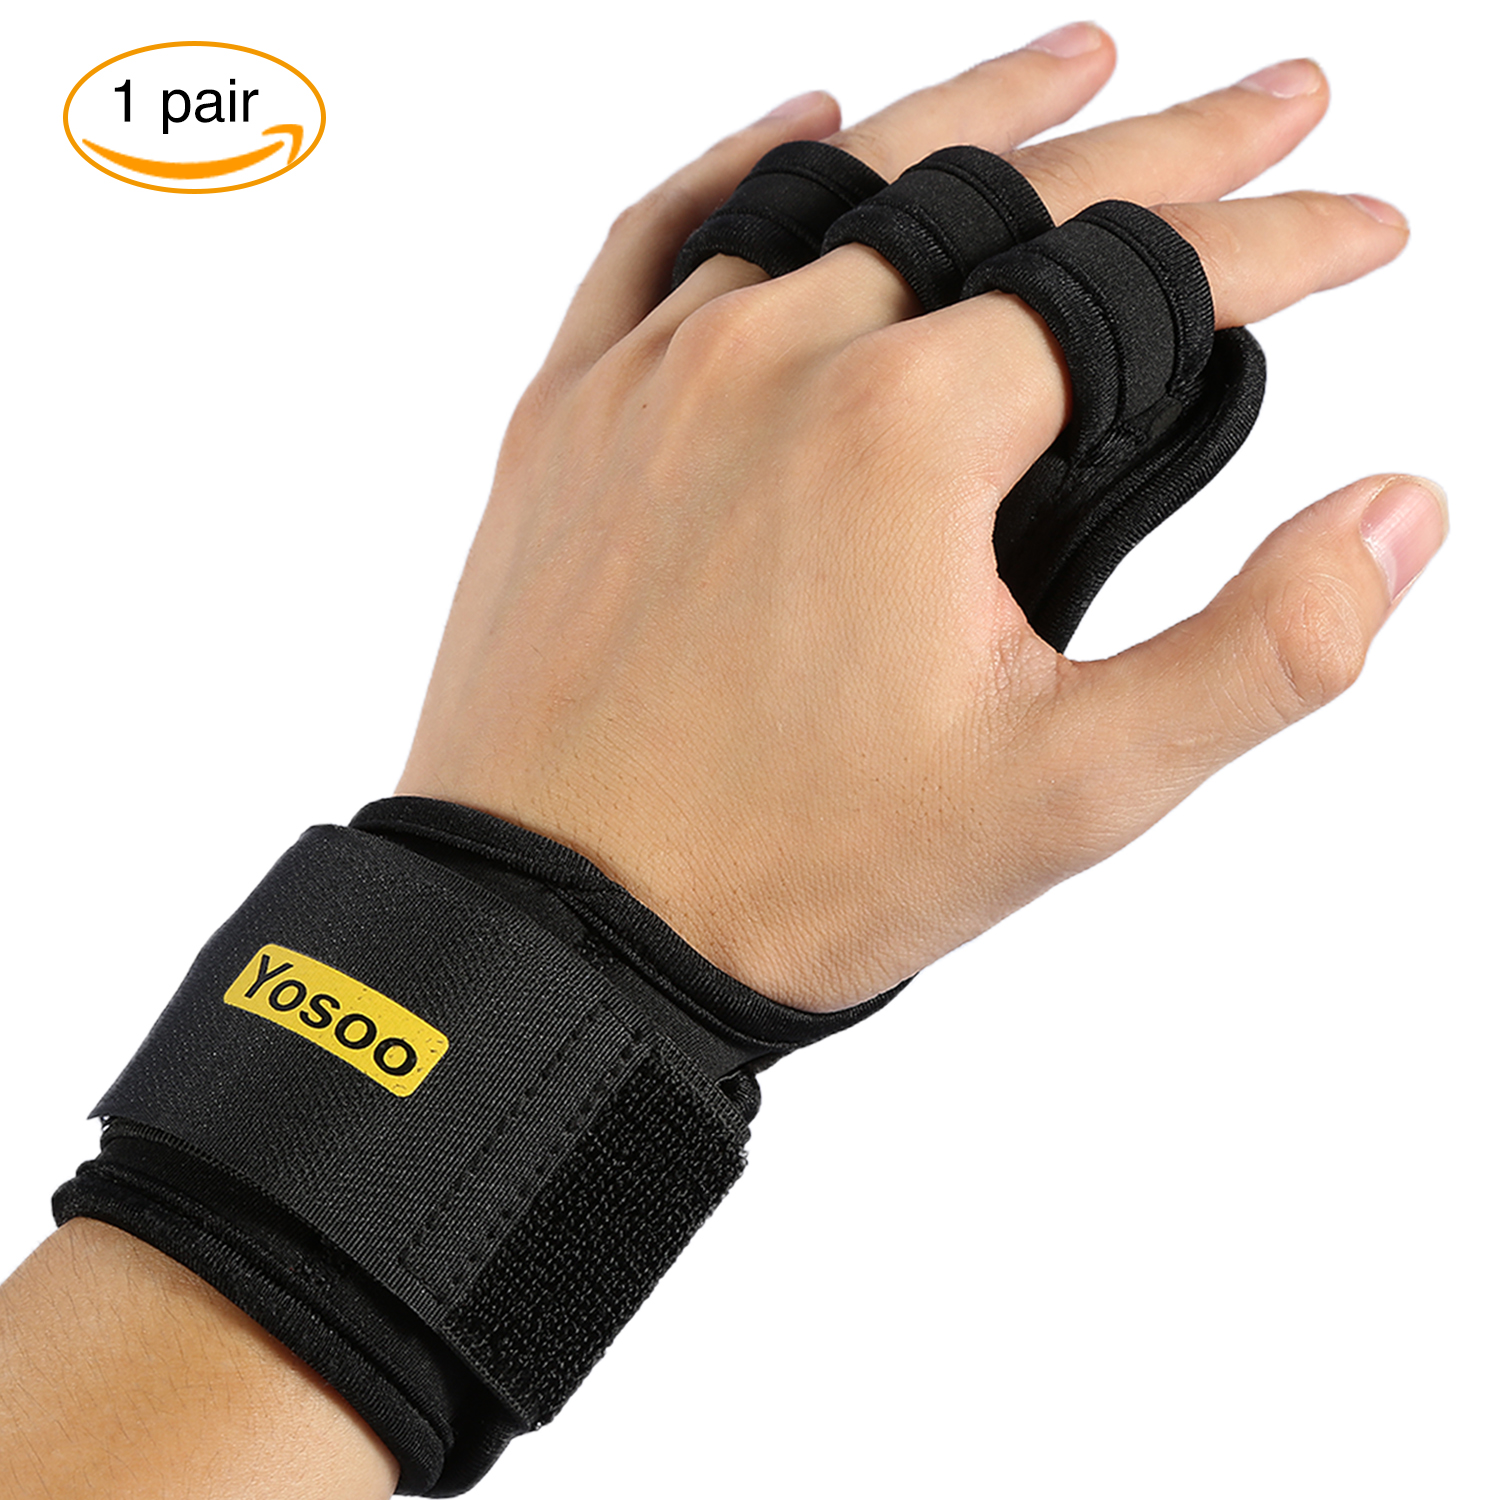 1 Pair Sports Weight Lifting Gloves For Workout Gym Cross Training Pull Ups